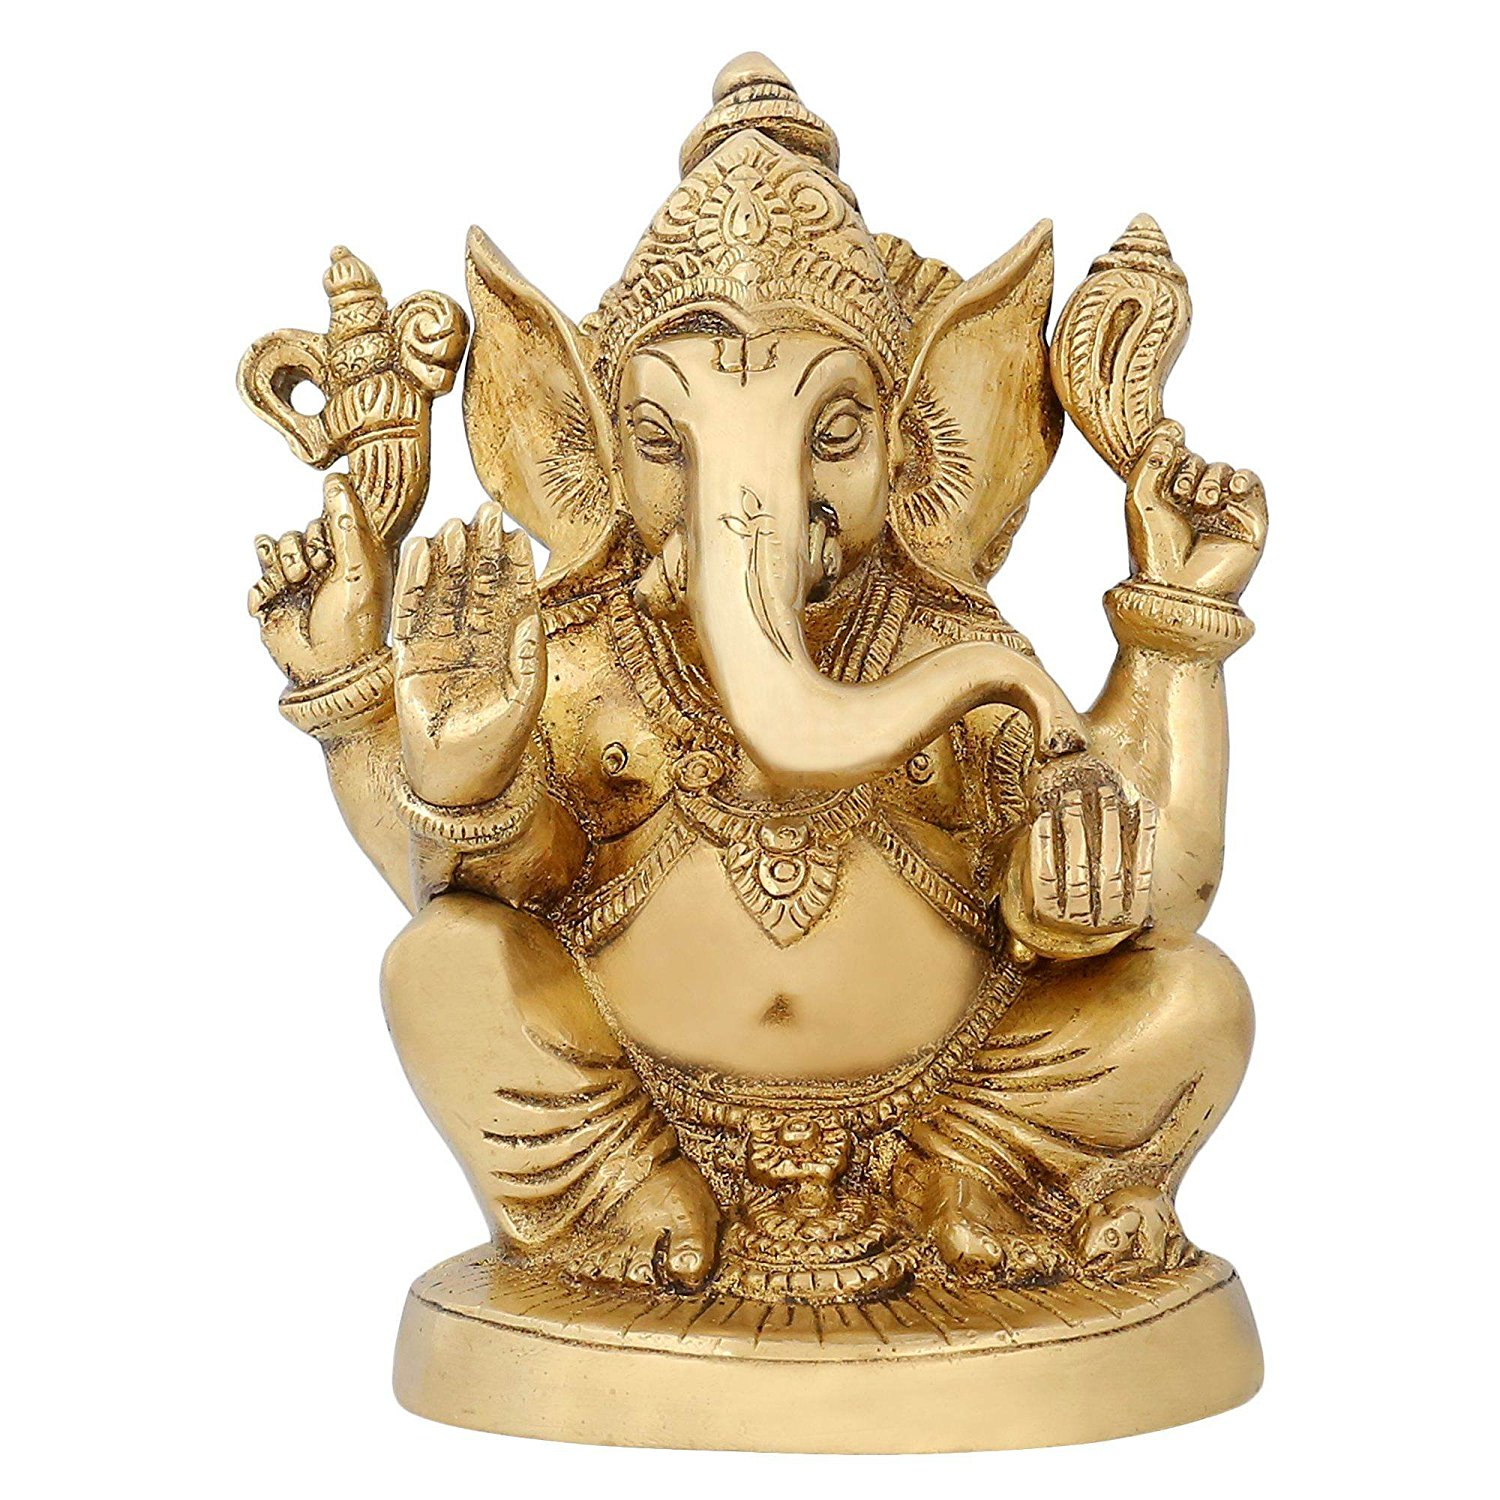 Cheap India Ganesha, find India Ganesha deals on line at Alibaba.com